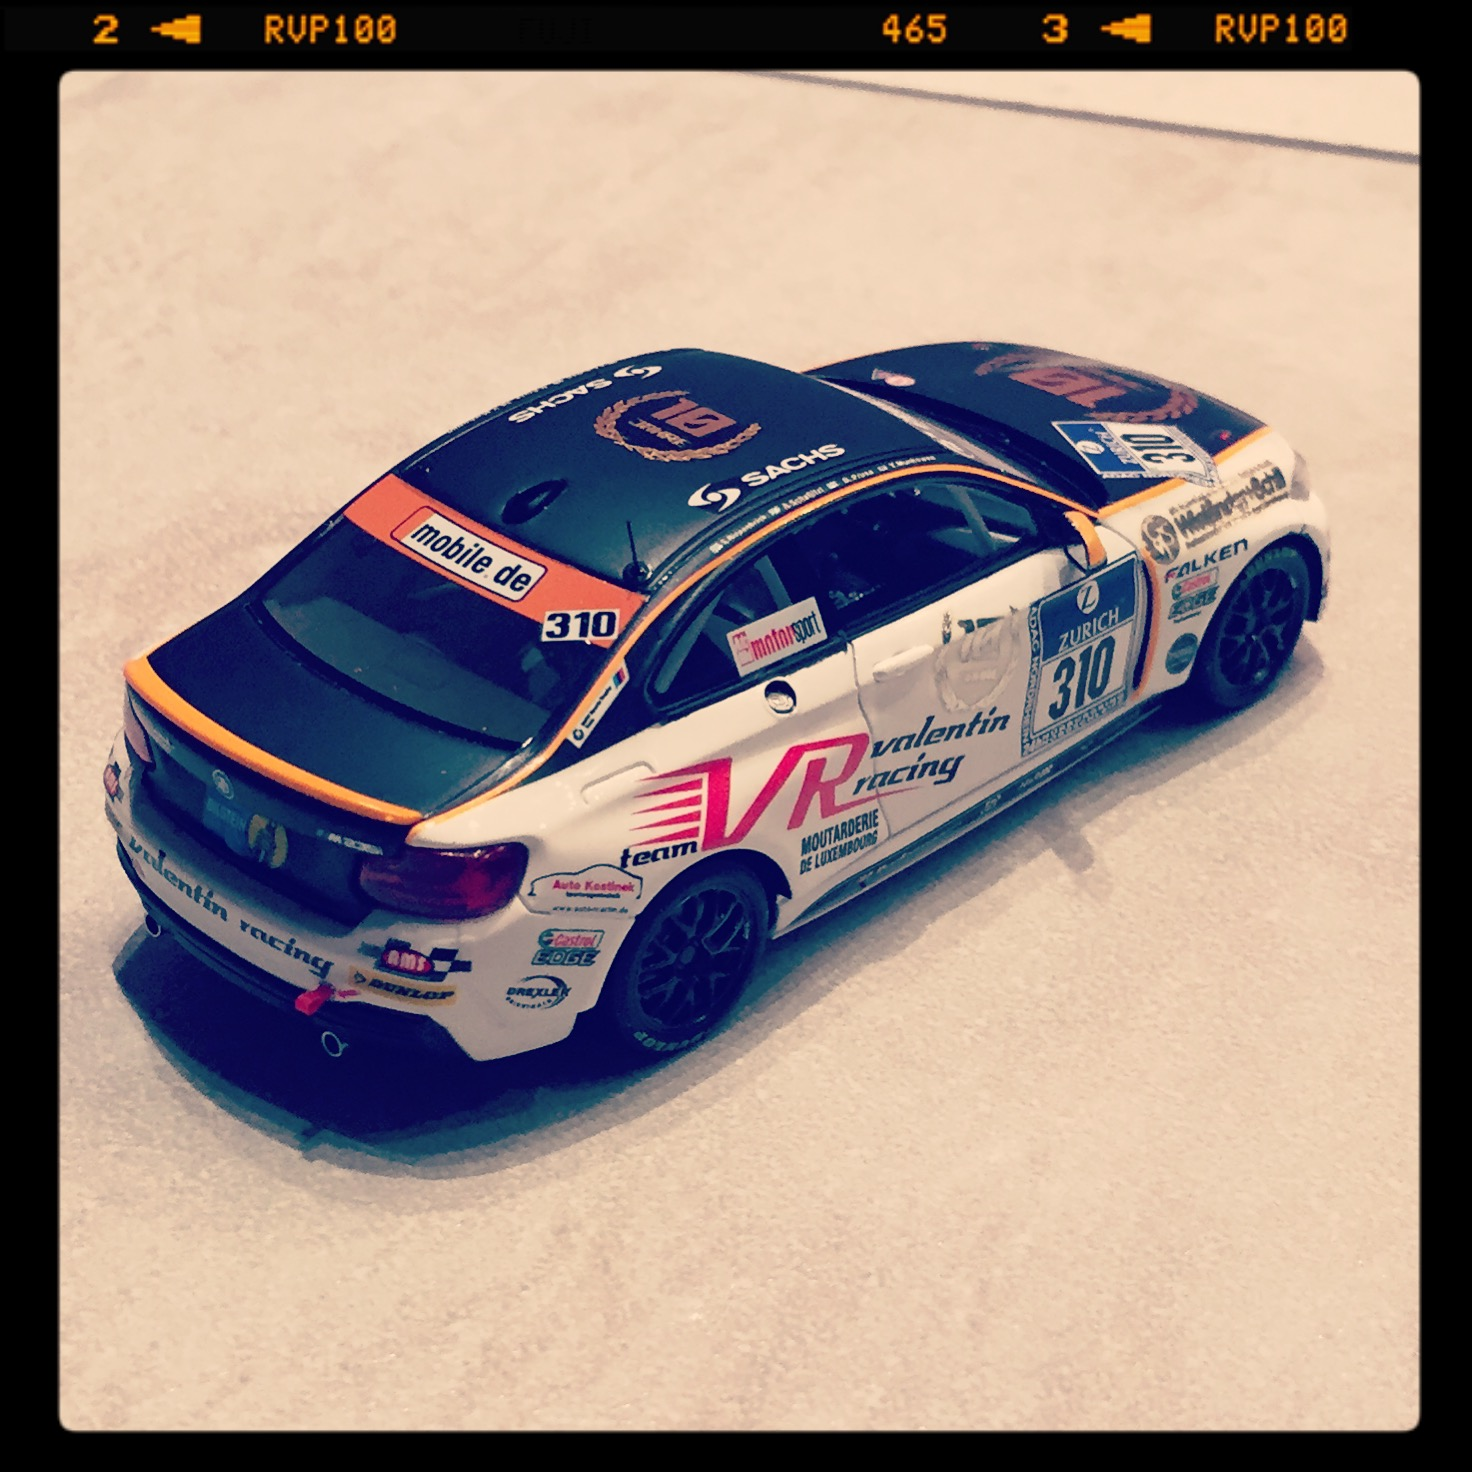 BMW M235i (F22) racing, team Valentin racing, #310 Piepenbrink/Schaflitzl/Prusa/Munhowen, 24h Nurburgring 2014, le 1 of 514pcs. (minichamps)